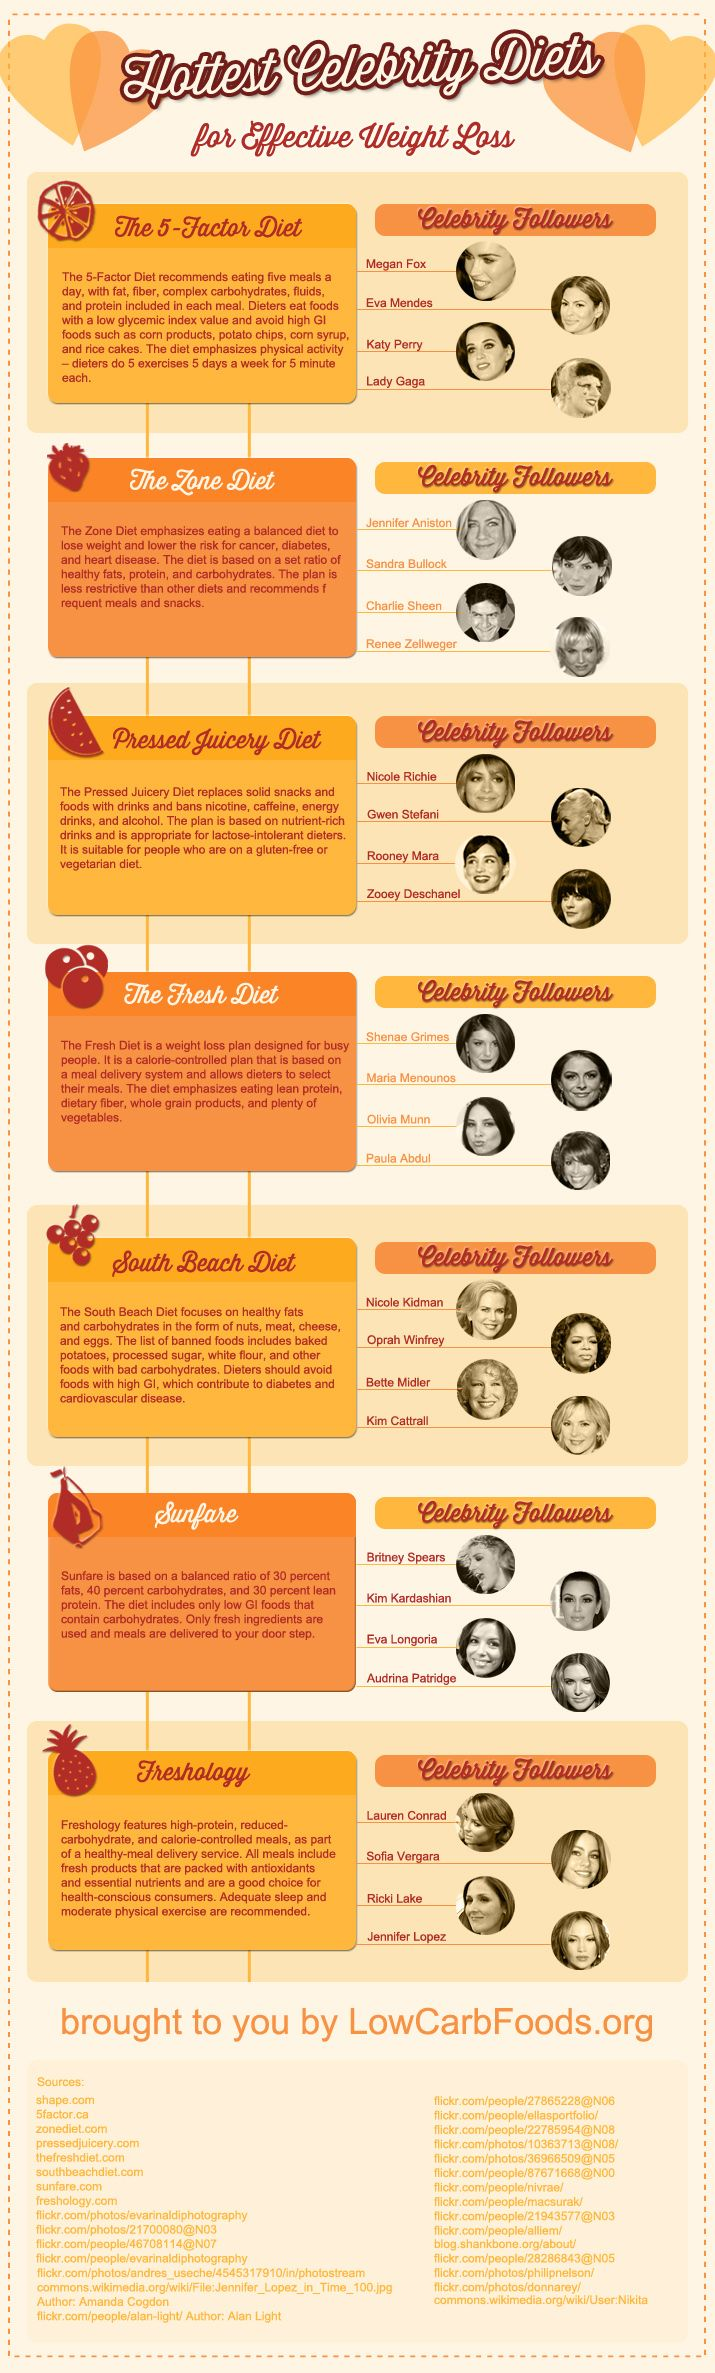 Celebrity Diets | HuffPost